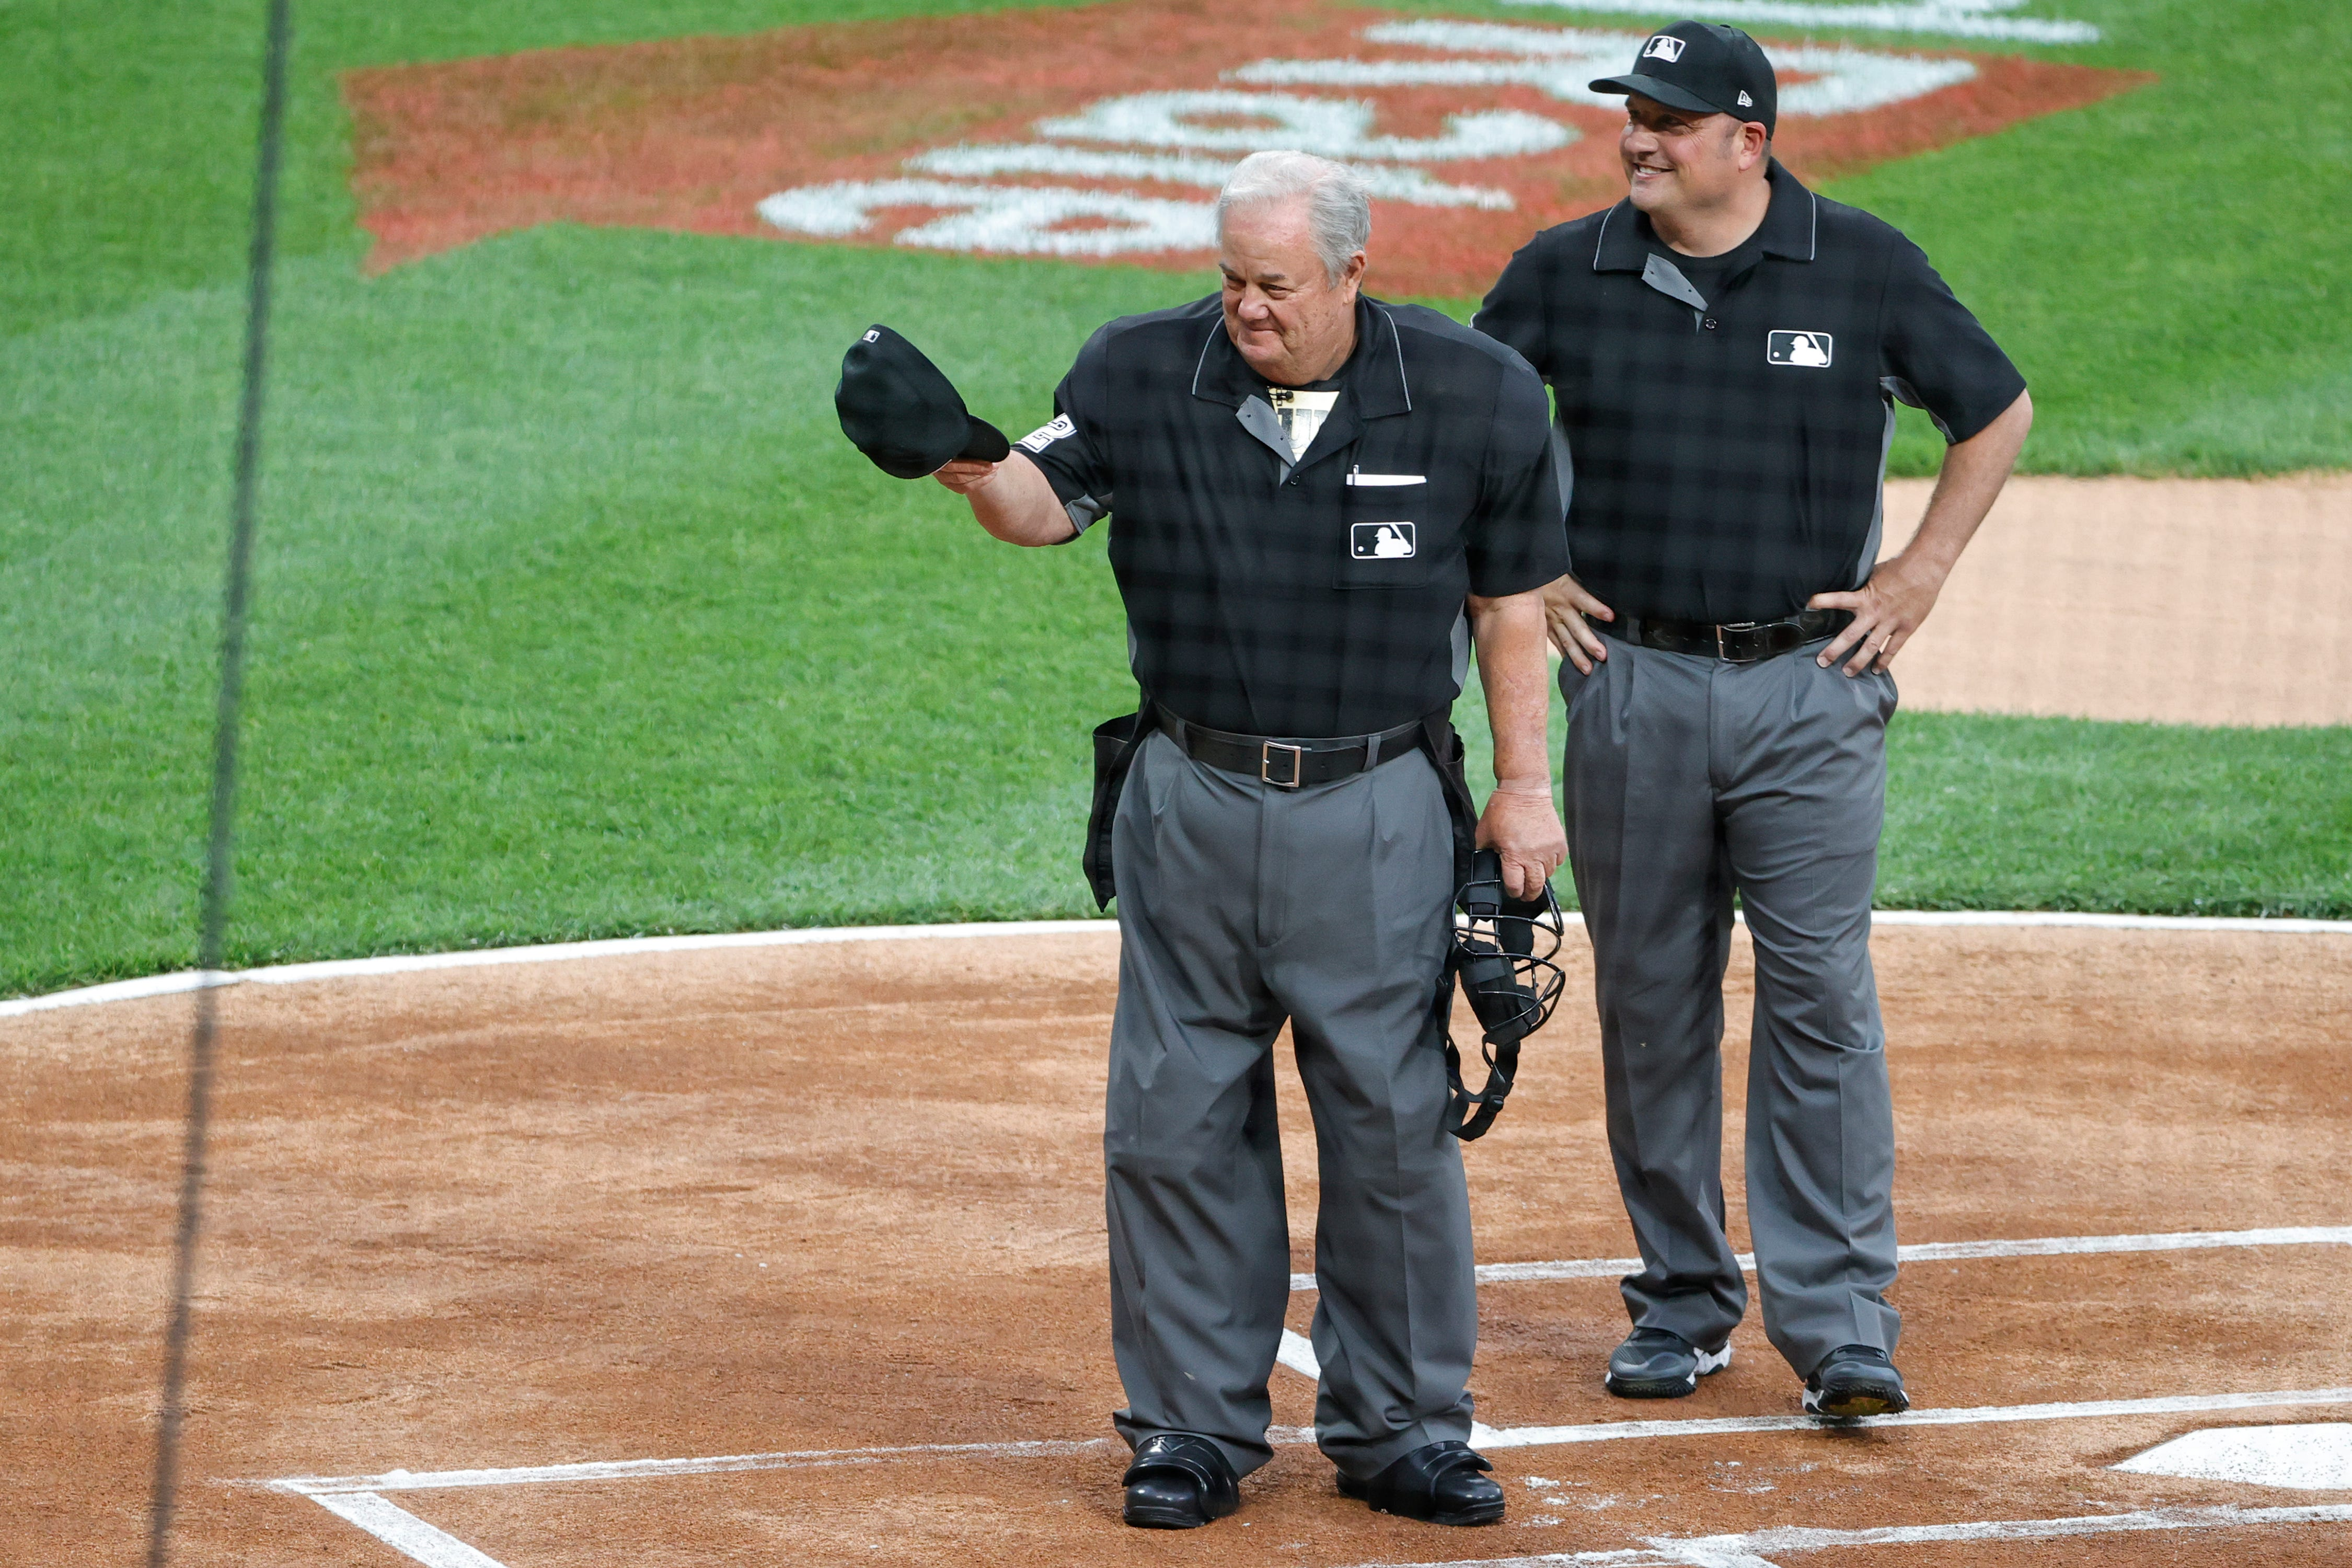 'What did you expect?' Joe West booed as he sets record with his 5,376th game as an umpire